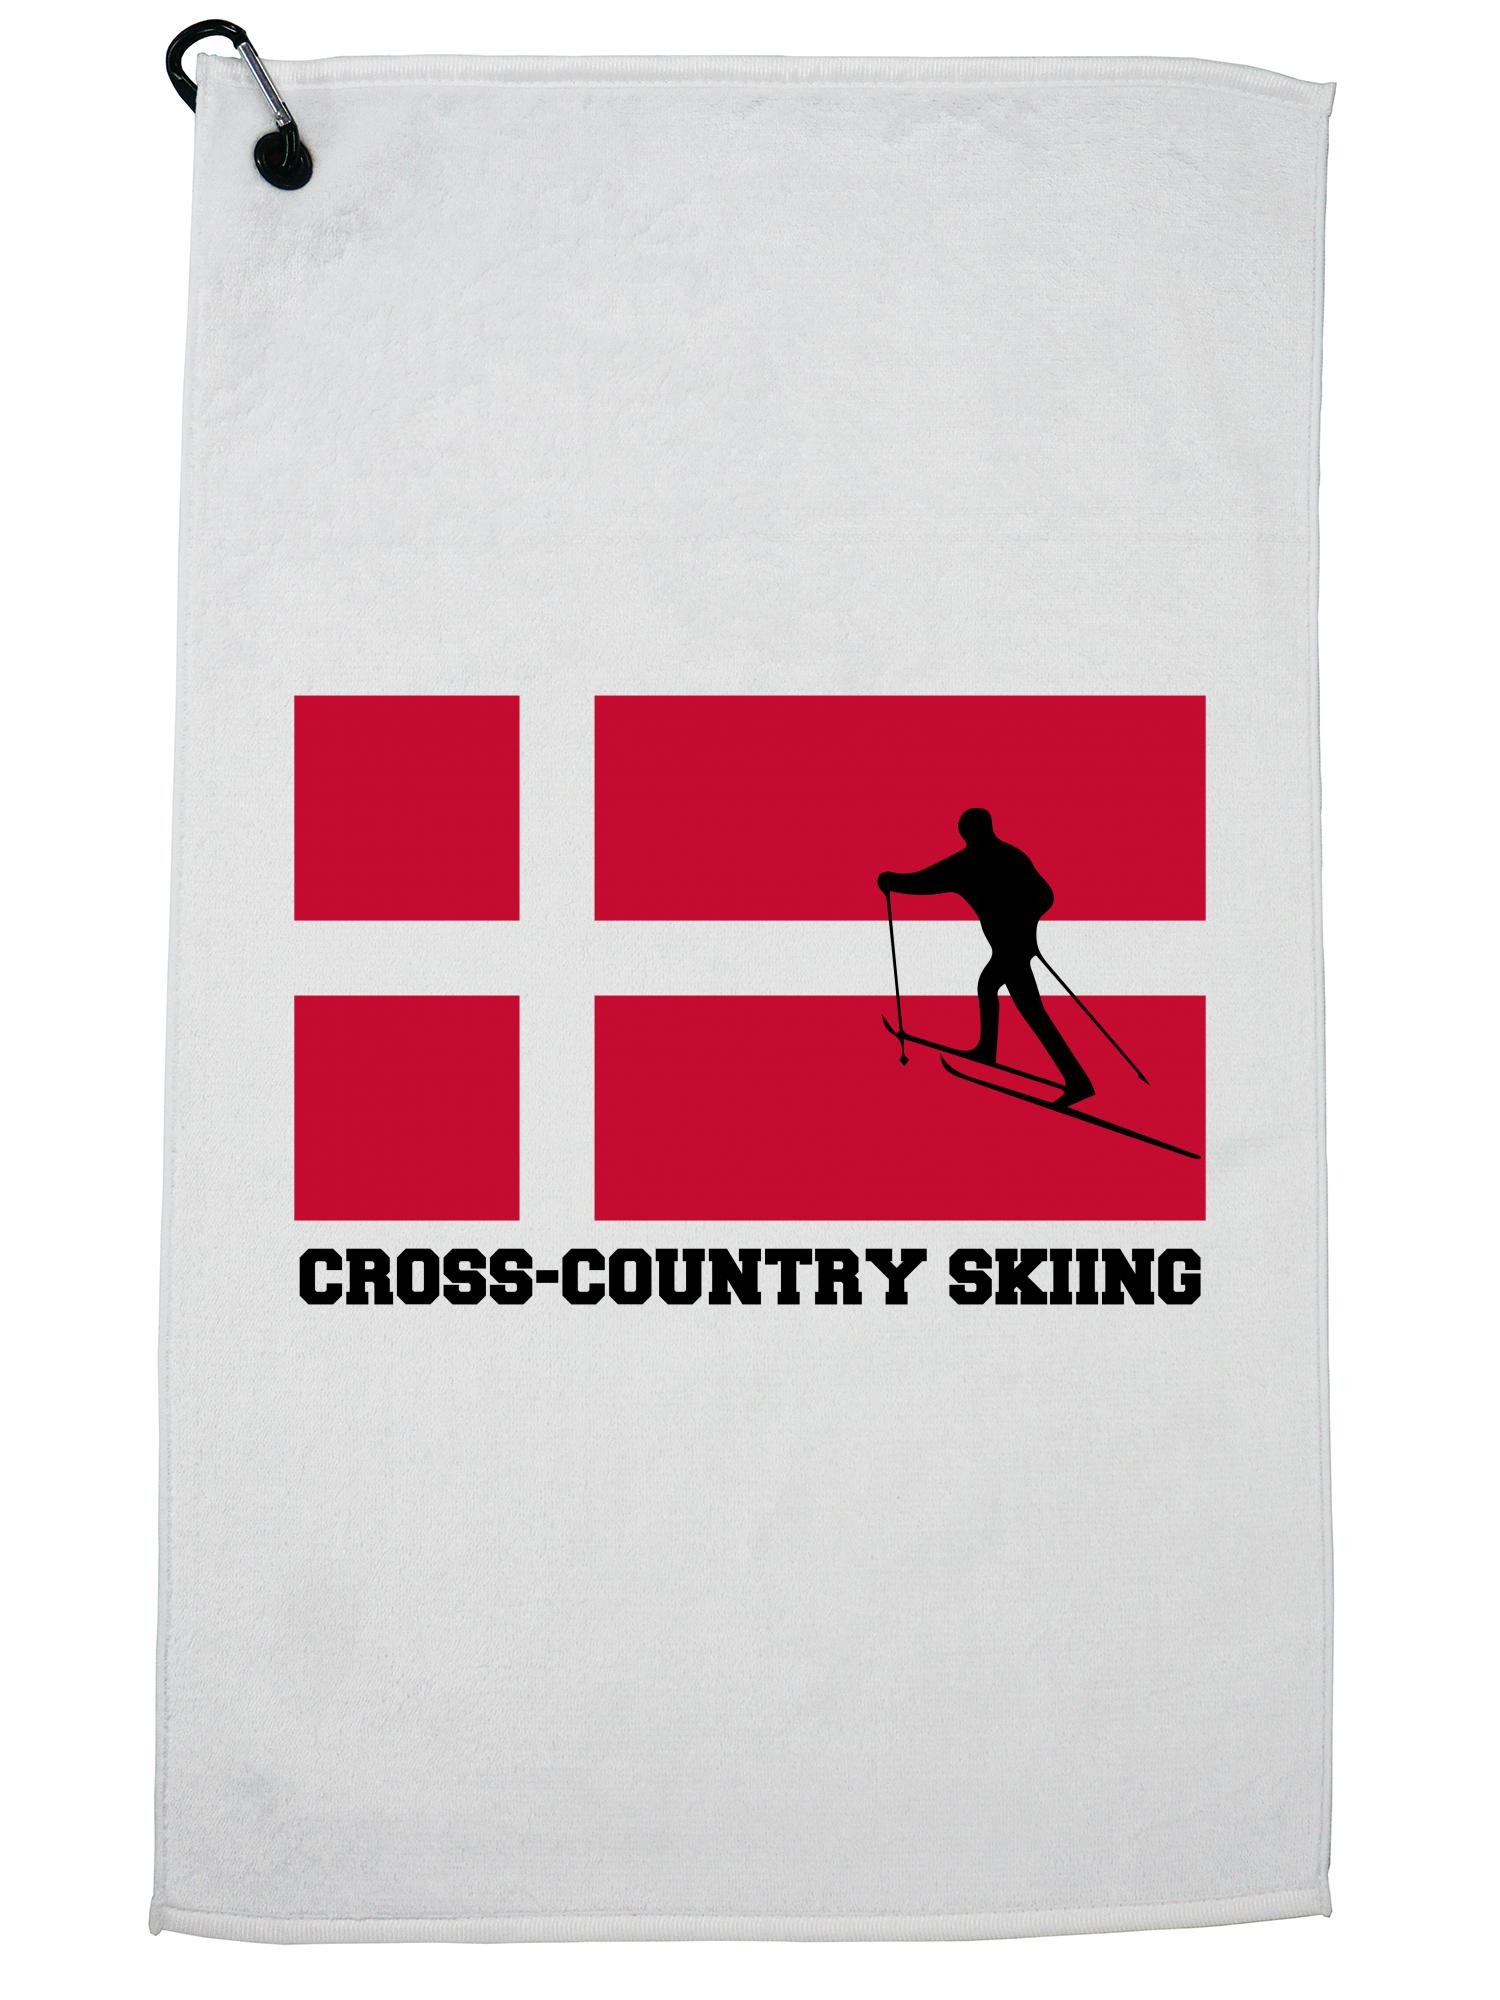 Denmark Olympic Cross-Country Skiing Flag Silhouette Golf Towel with Carabiner Clip by Hollywood Thread